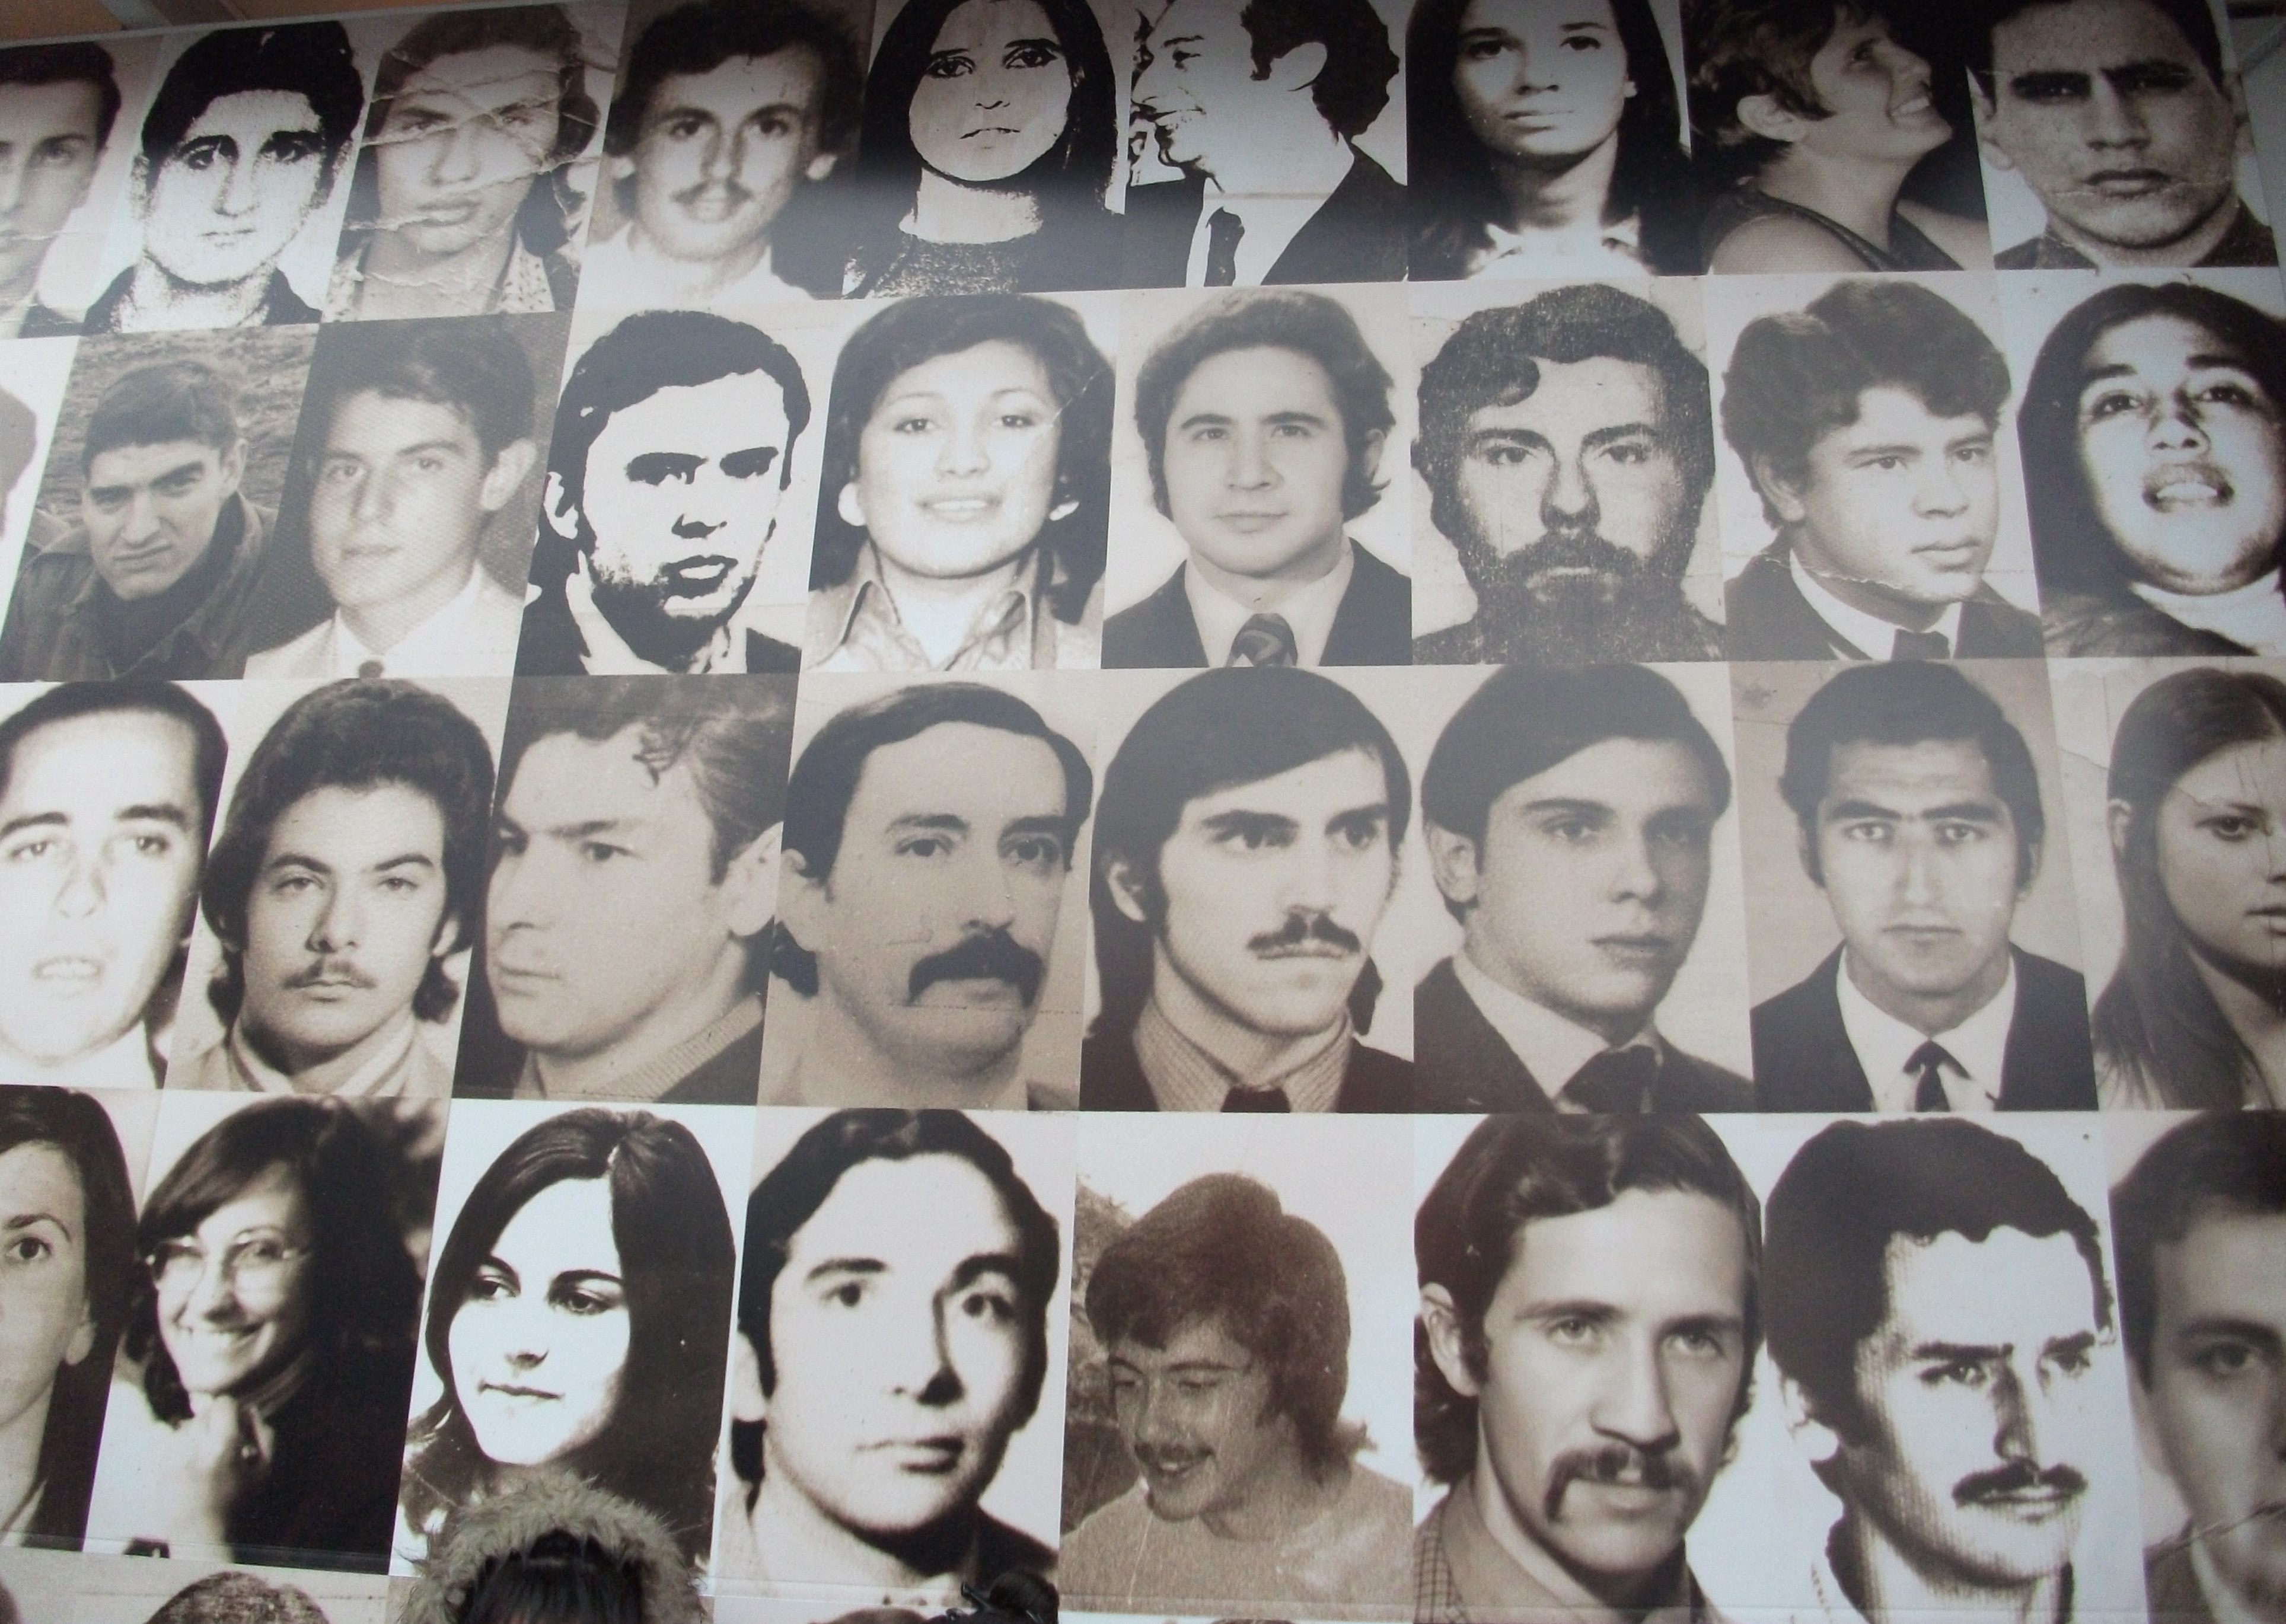 """an analysis of argentinas dirty war Investigation of argentina's """"dirty war"""" set precedent for inquiry into iran's investigation of argentina's """"dirty war"""" set commentary and analysis."""